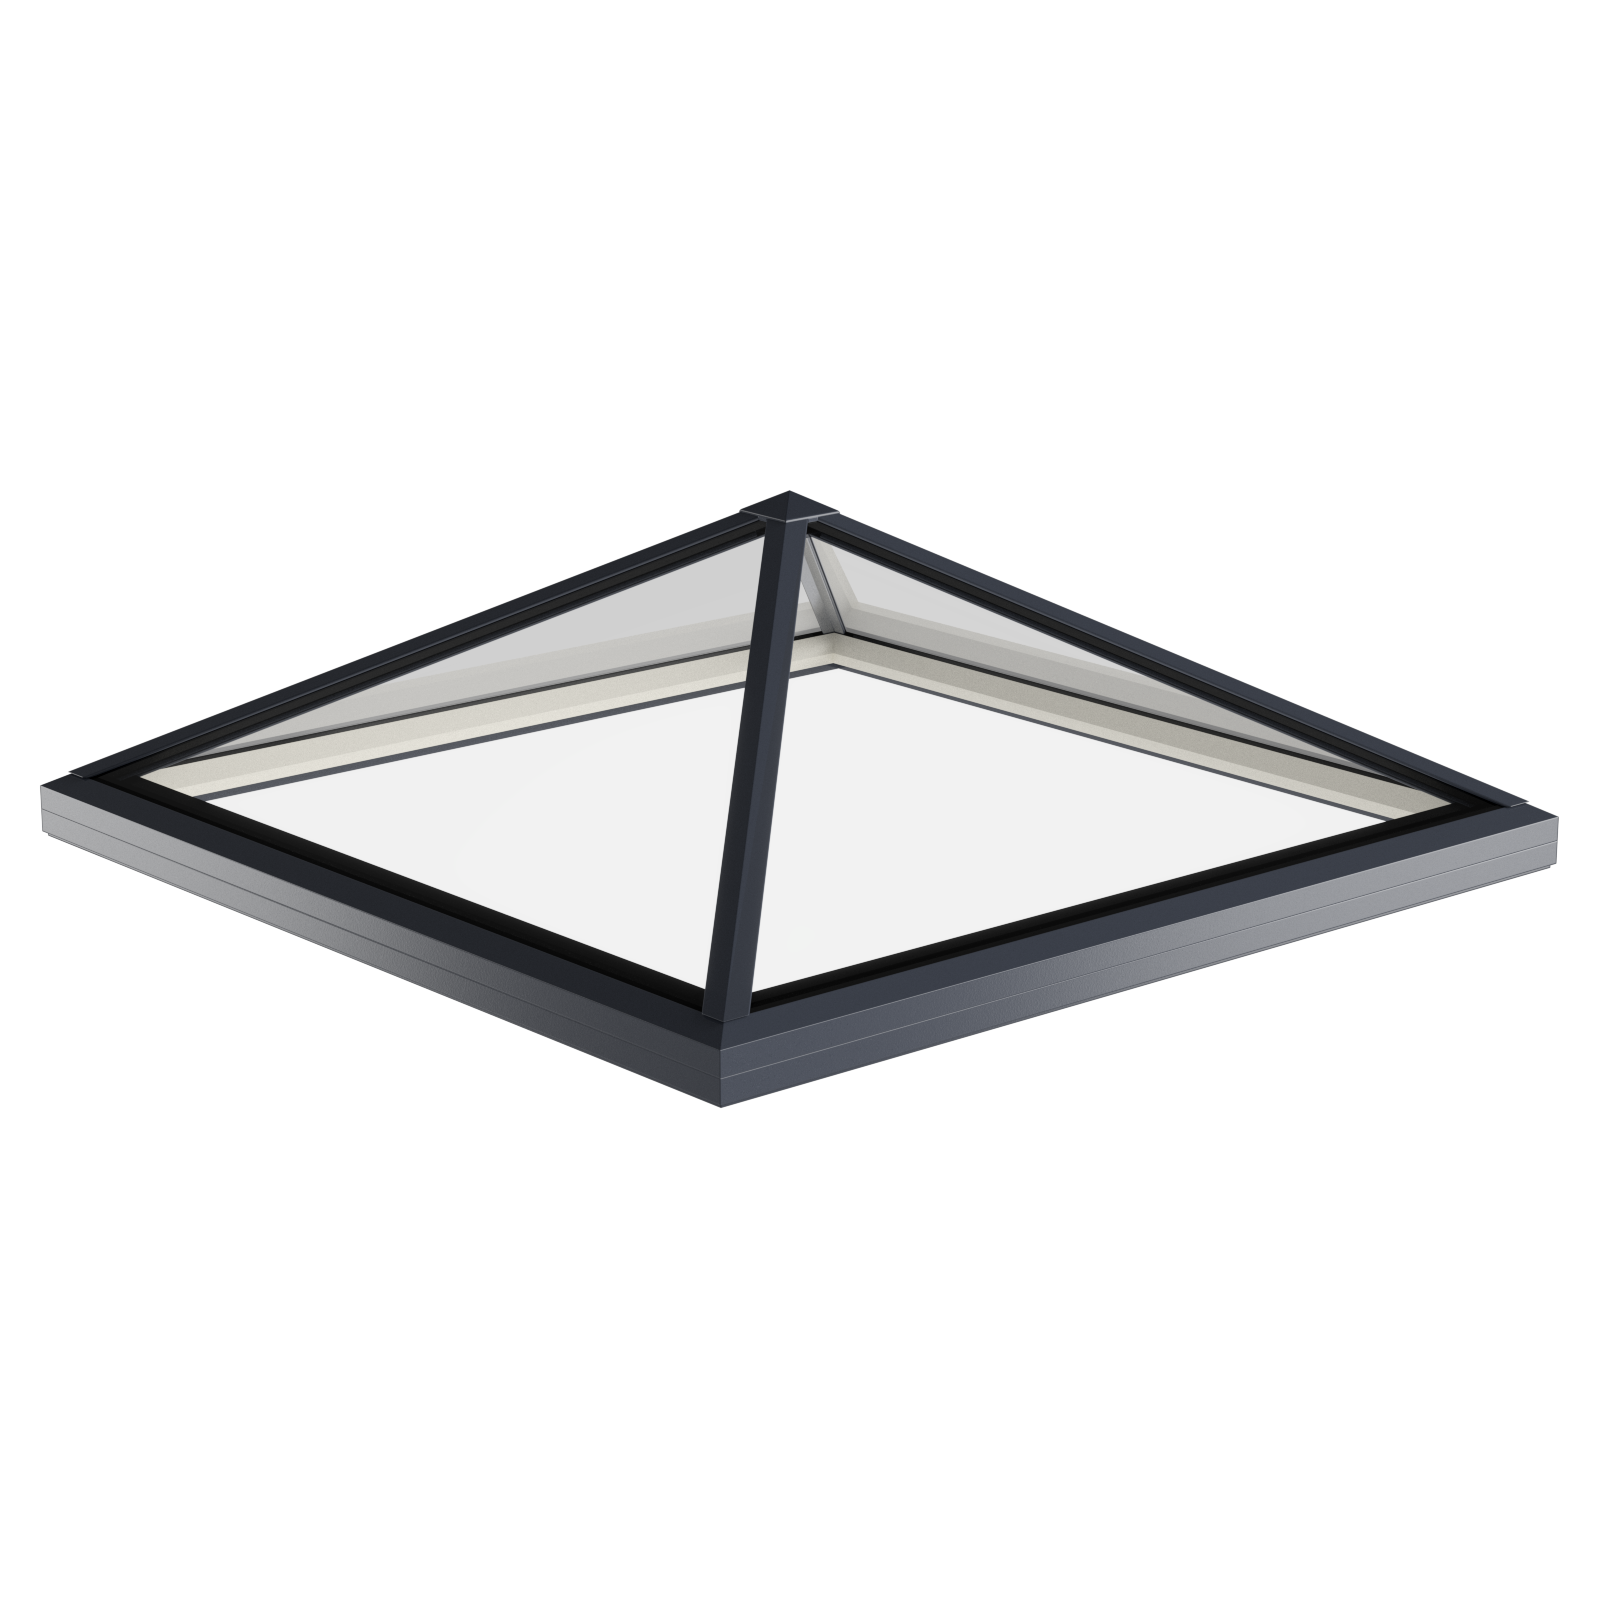 Sunsquare Pyramid 30º Lantern Skylight